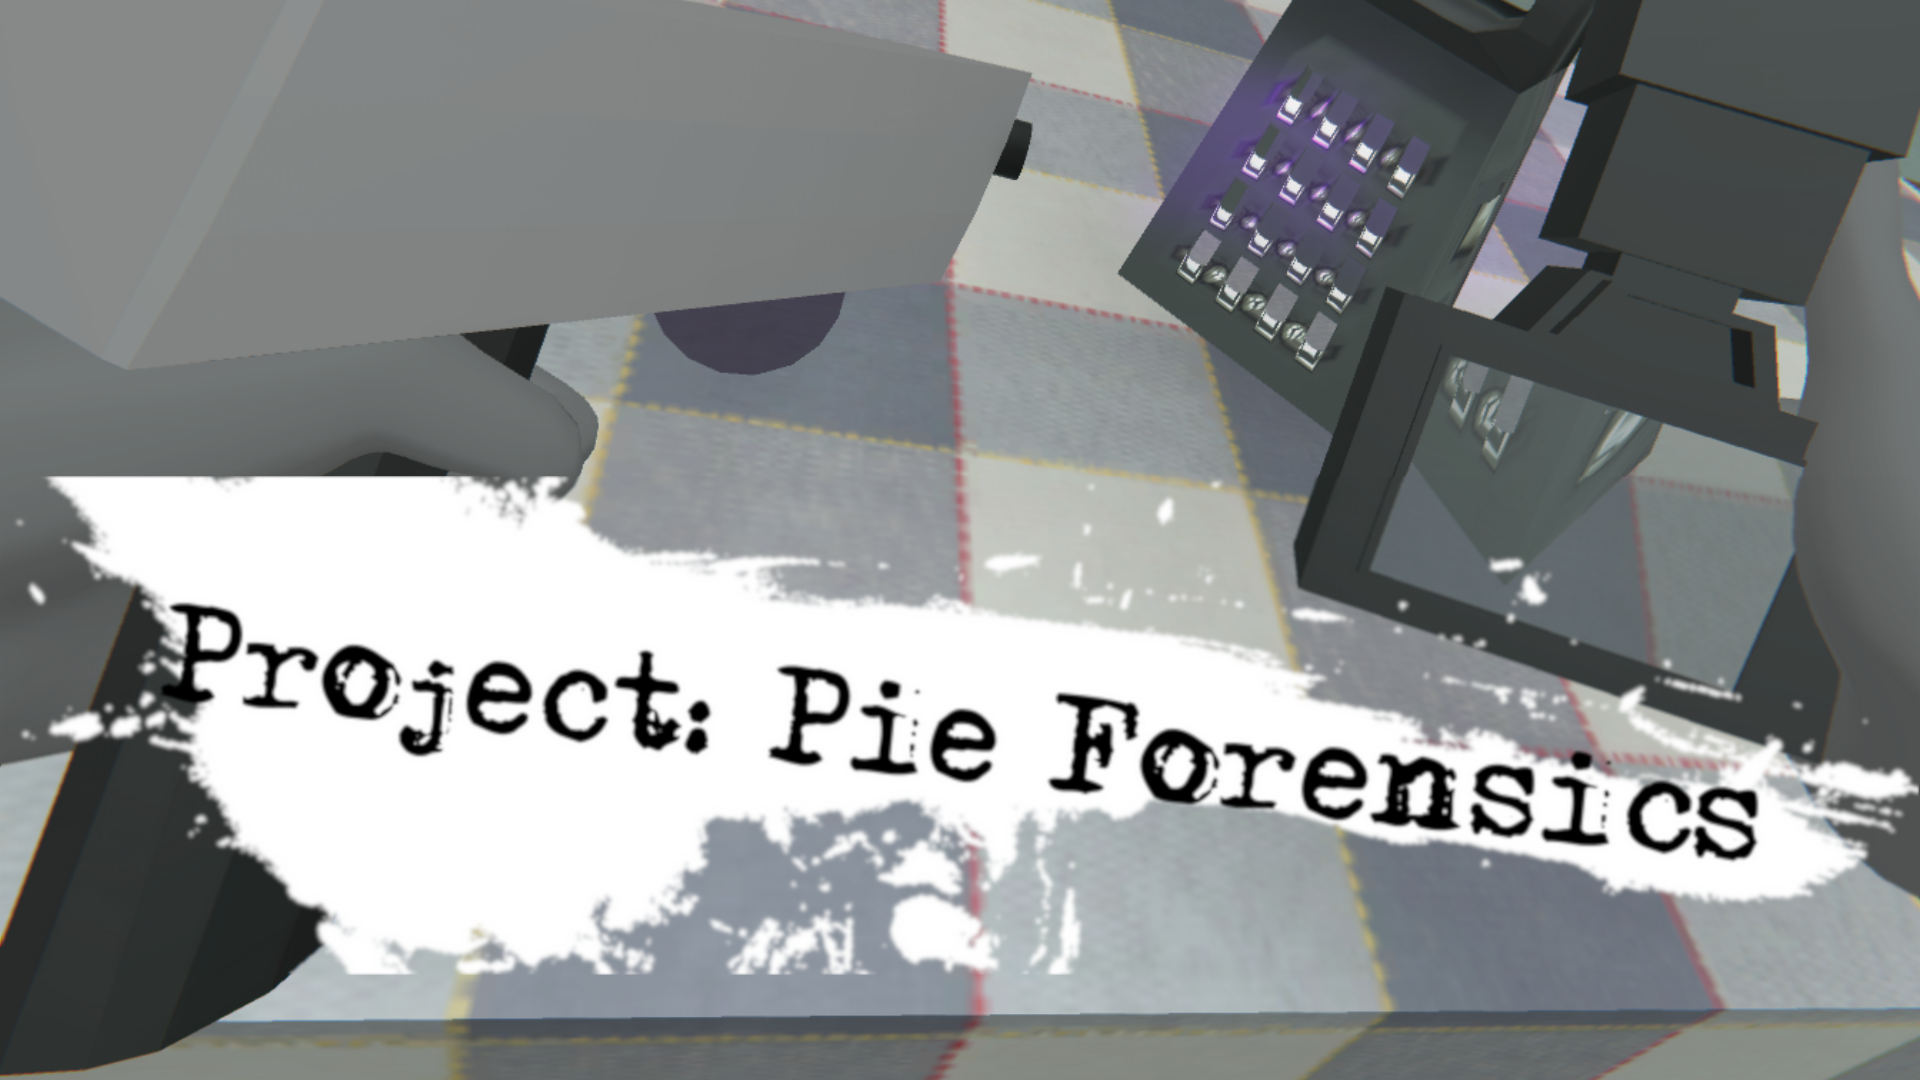 Project: Pie Forensics